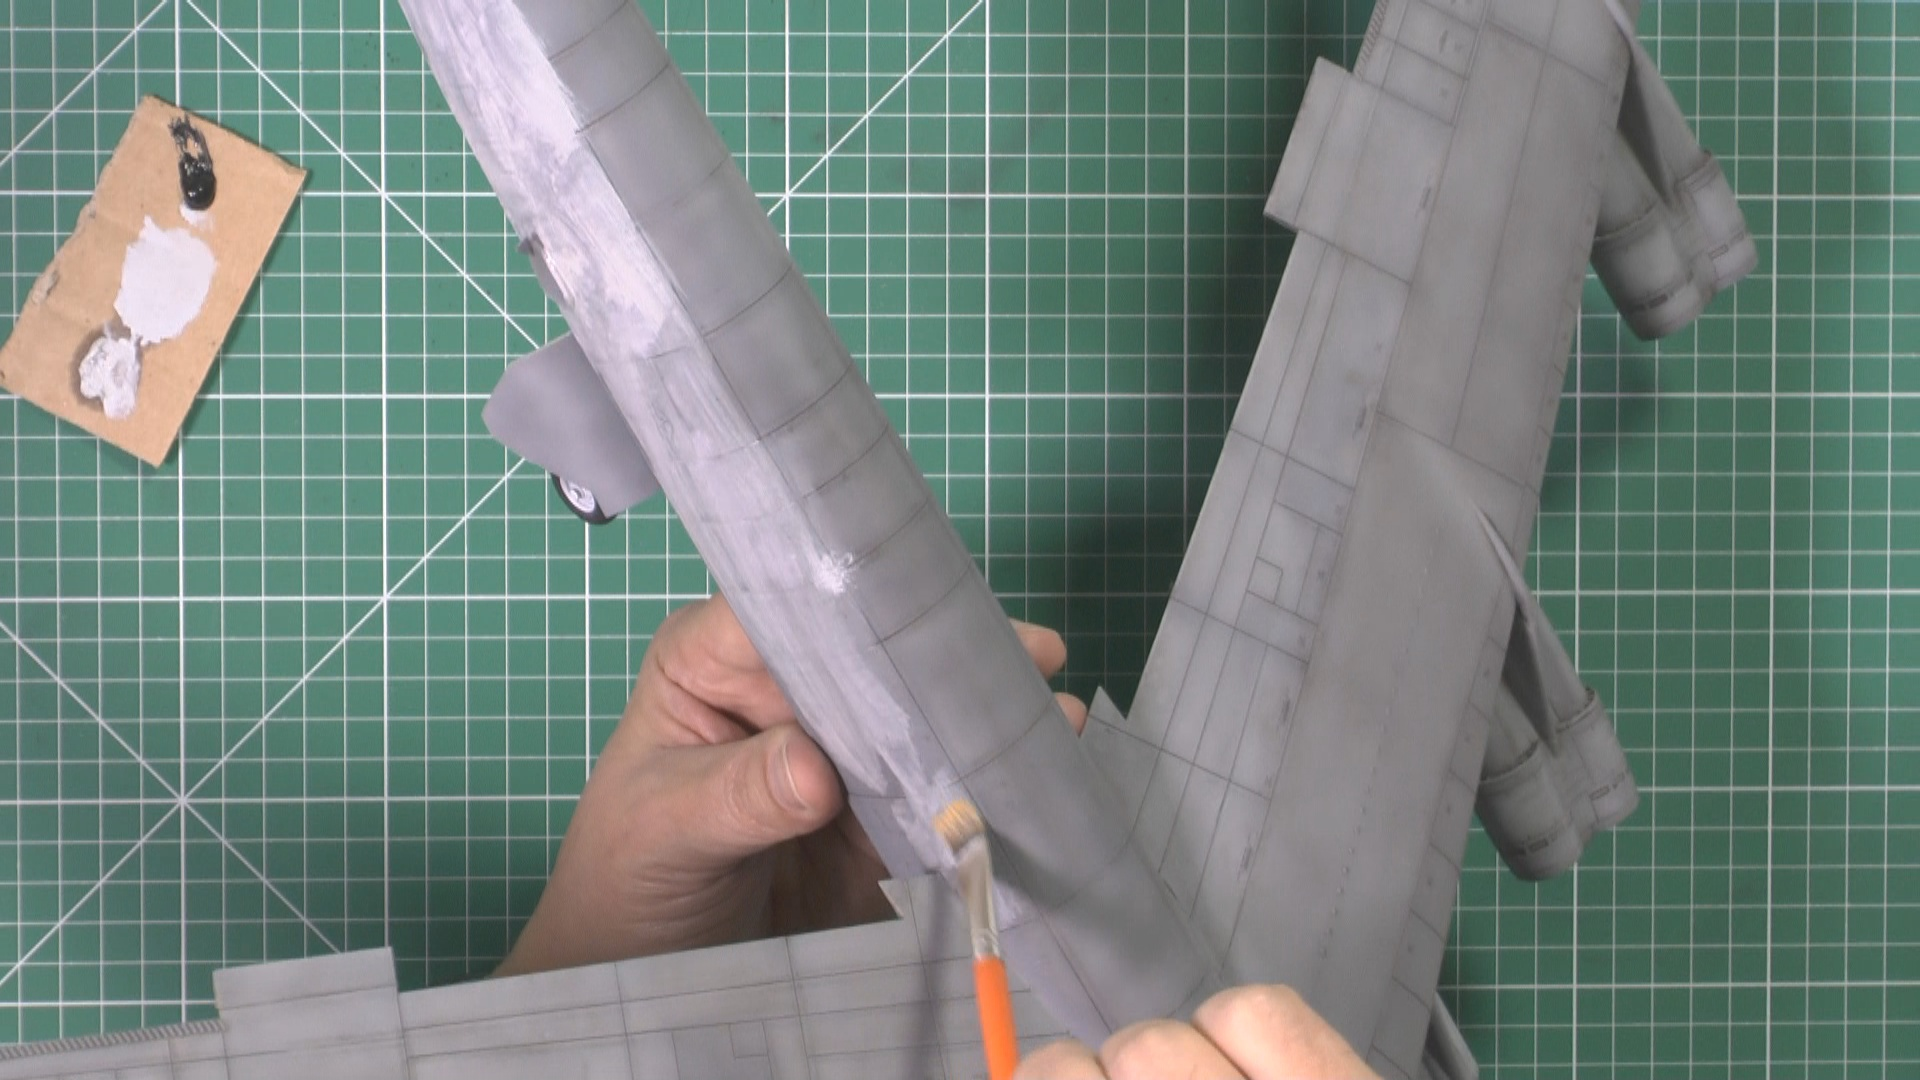 Model Collect B52 Part 13 Pic 2.jpg